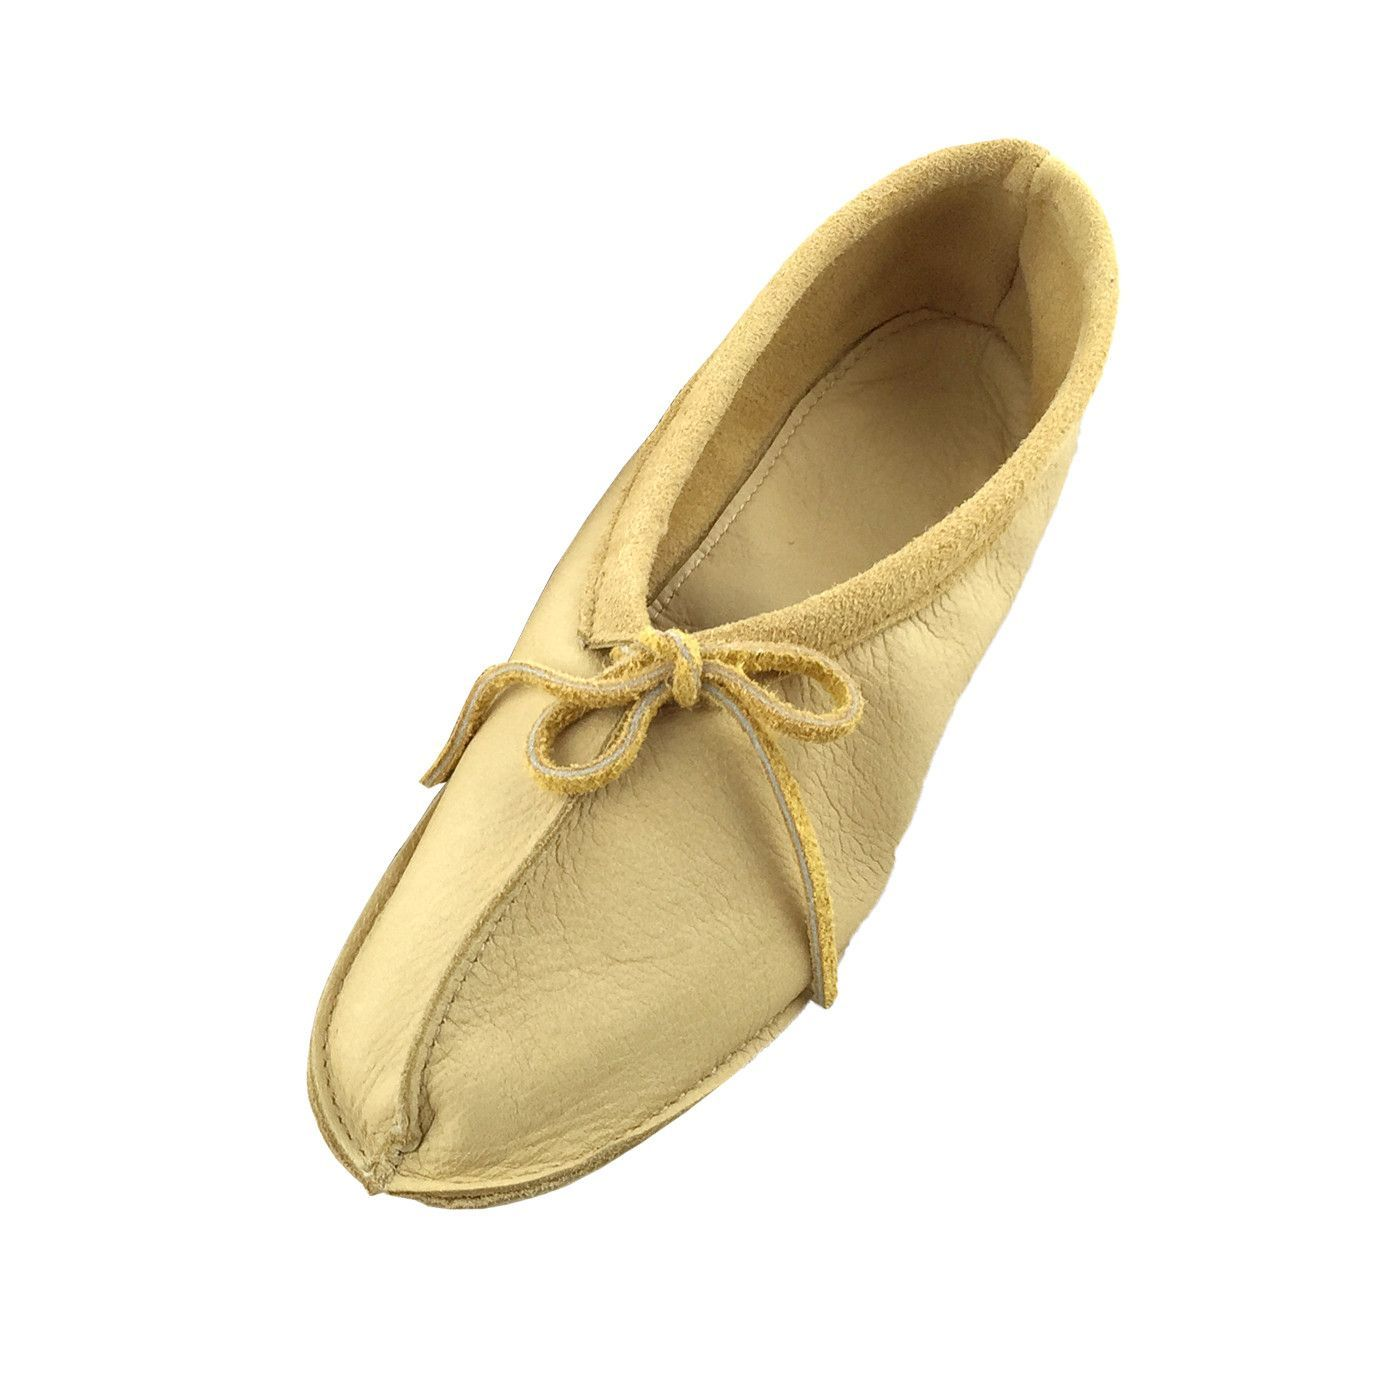 445b50c5f Feel like you are walking barefoot with the best ladies ballerina moccasins  Canadian handmade by Native American co. Bastien Industries for discount  sale ...